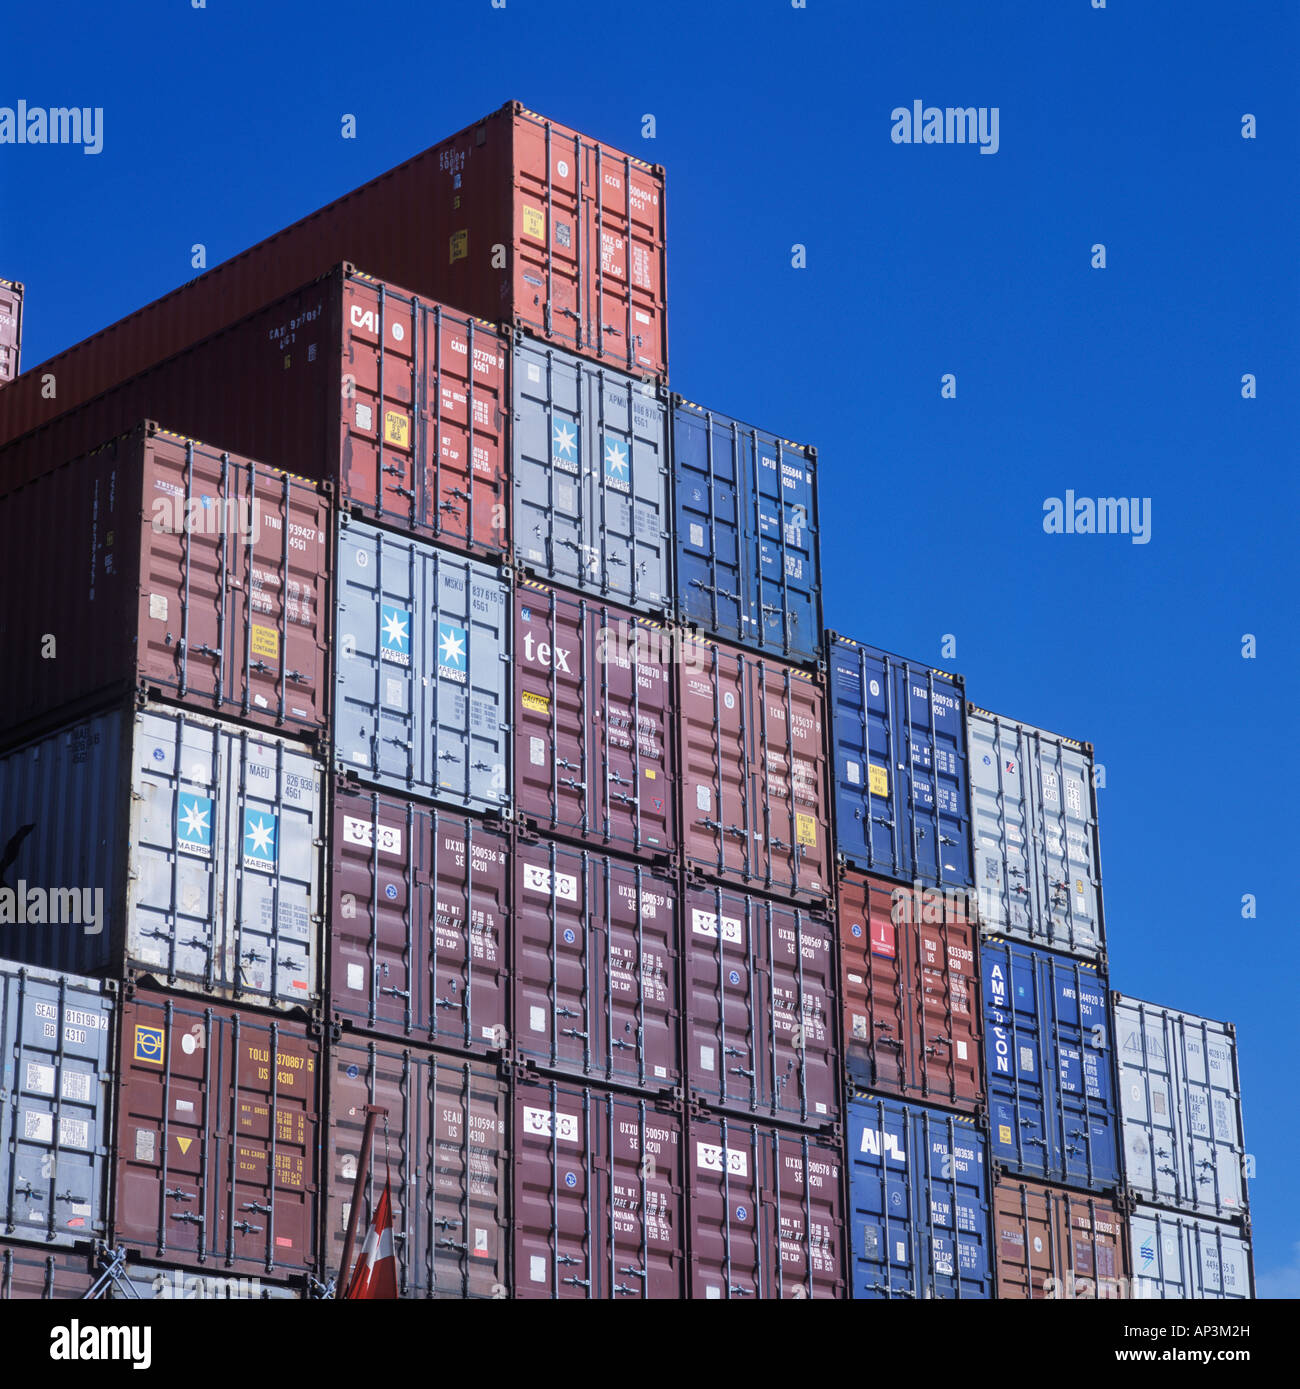 Shipping containers stacked and ready for transportation - Stock Image